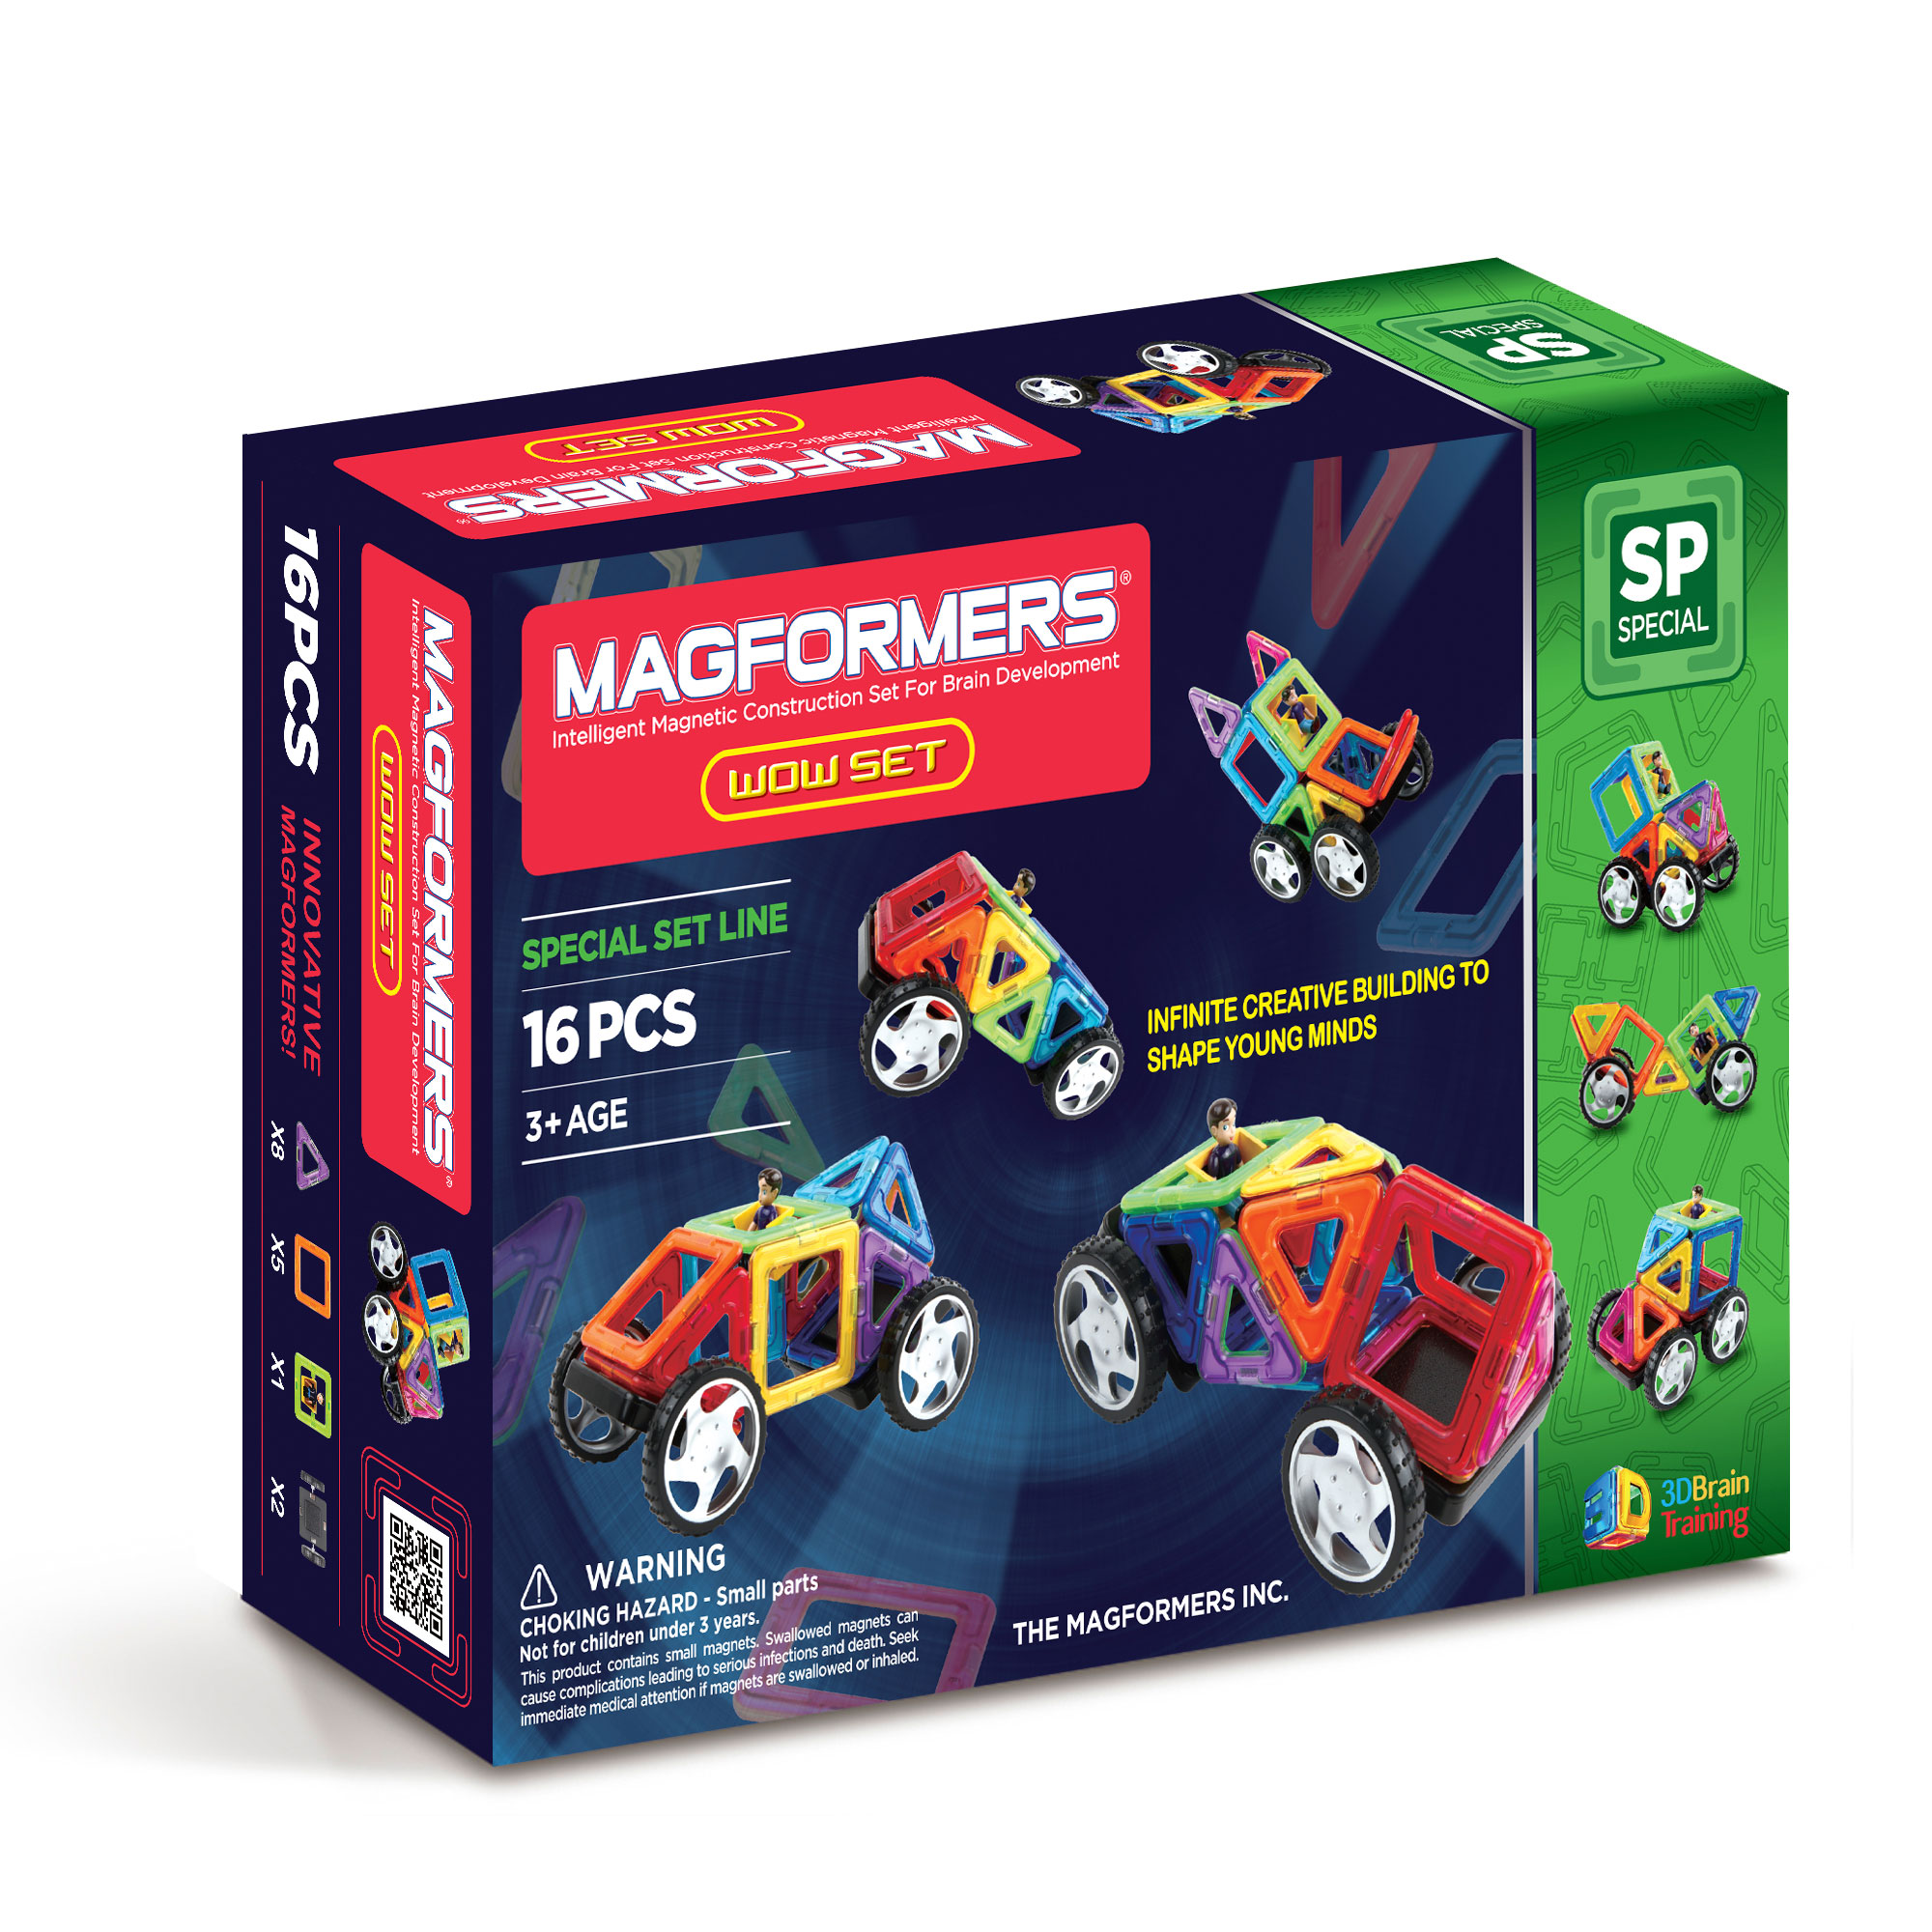 Magformers Wow Set Buy Online Magnetic Construction